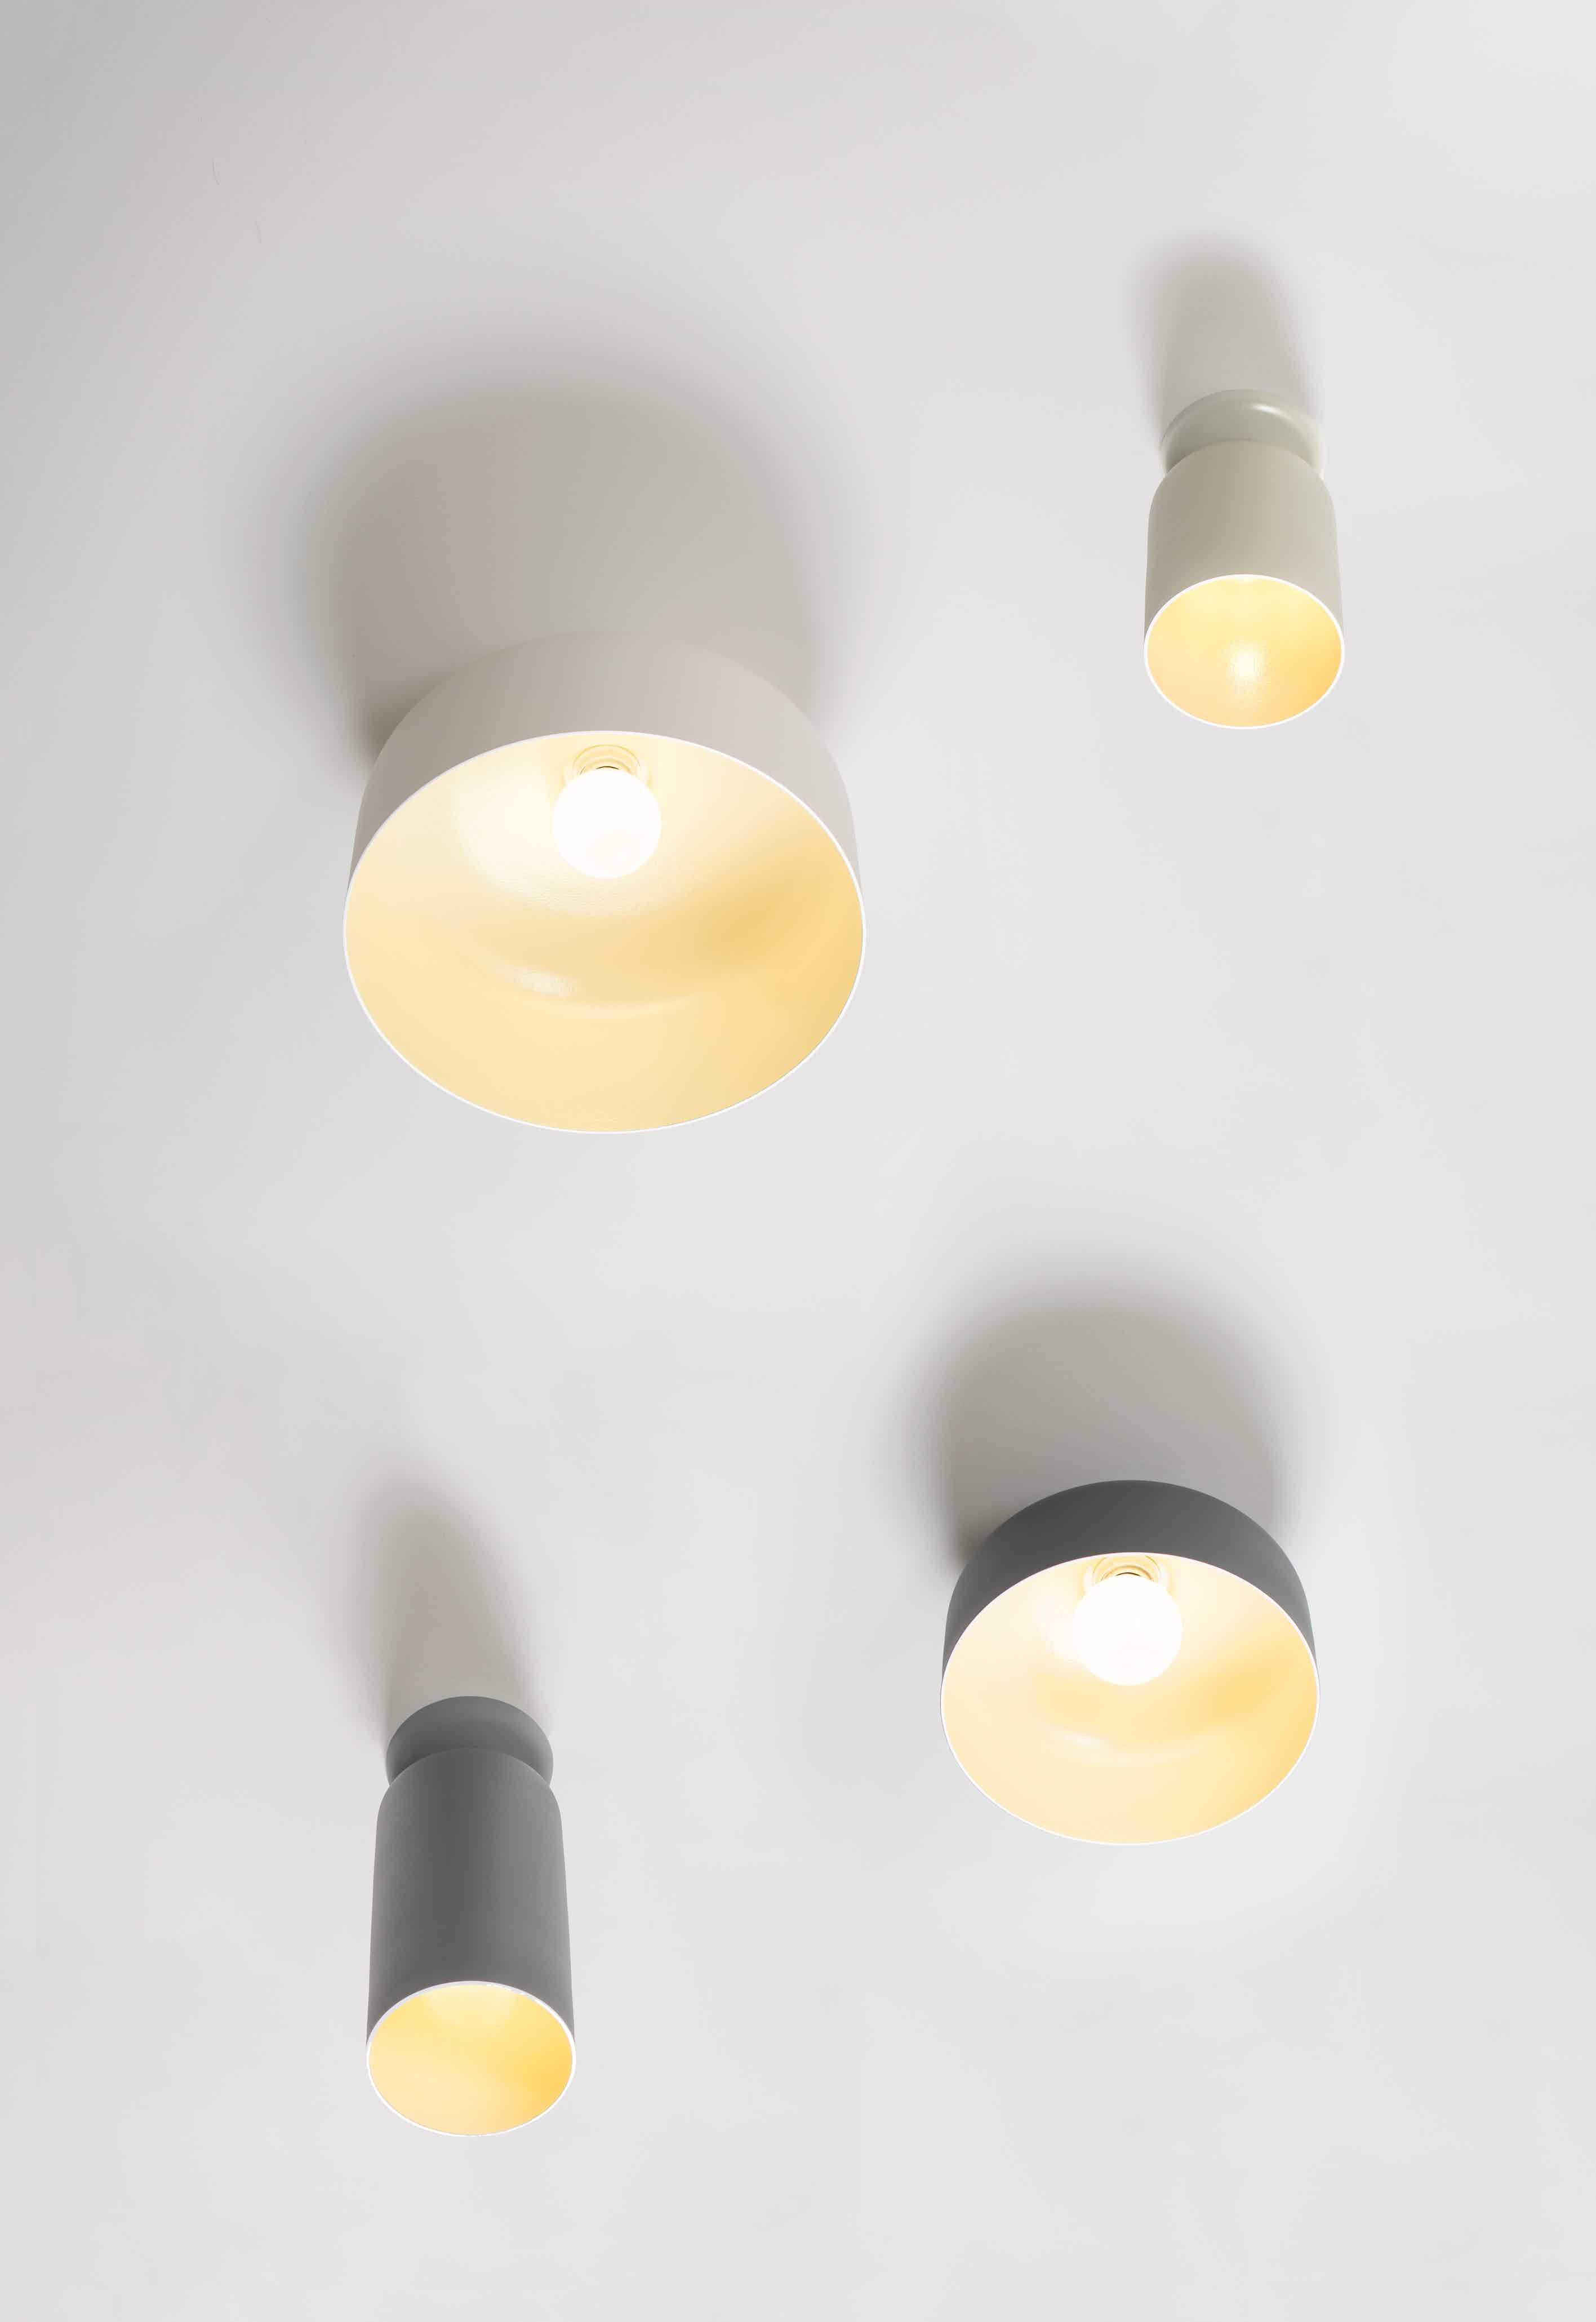 Spotlight Volumes Ceiling Wall Lamp By Andlight Haute Living